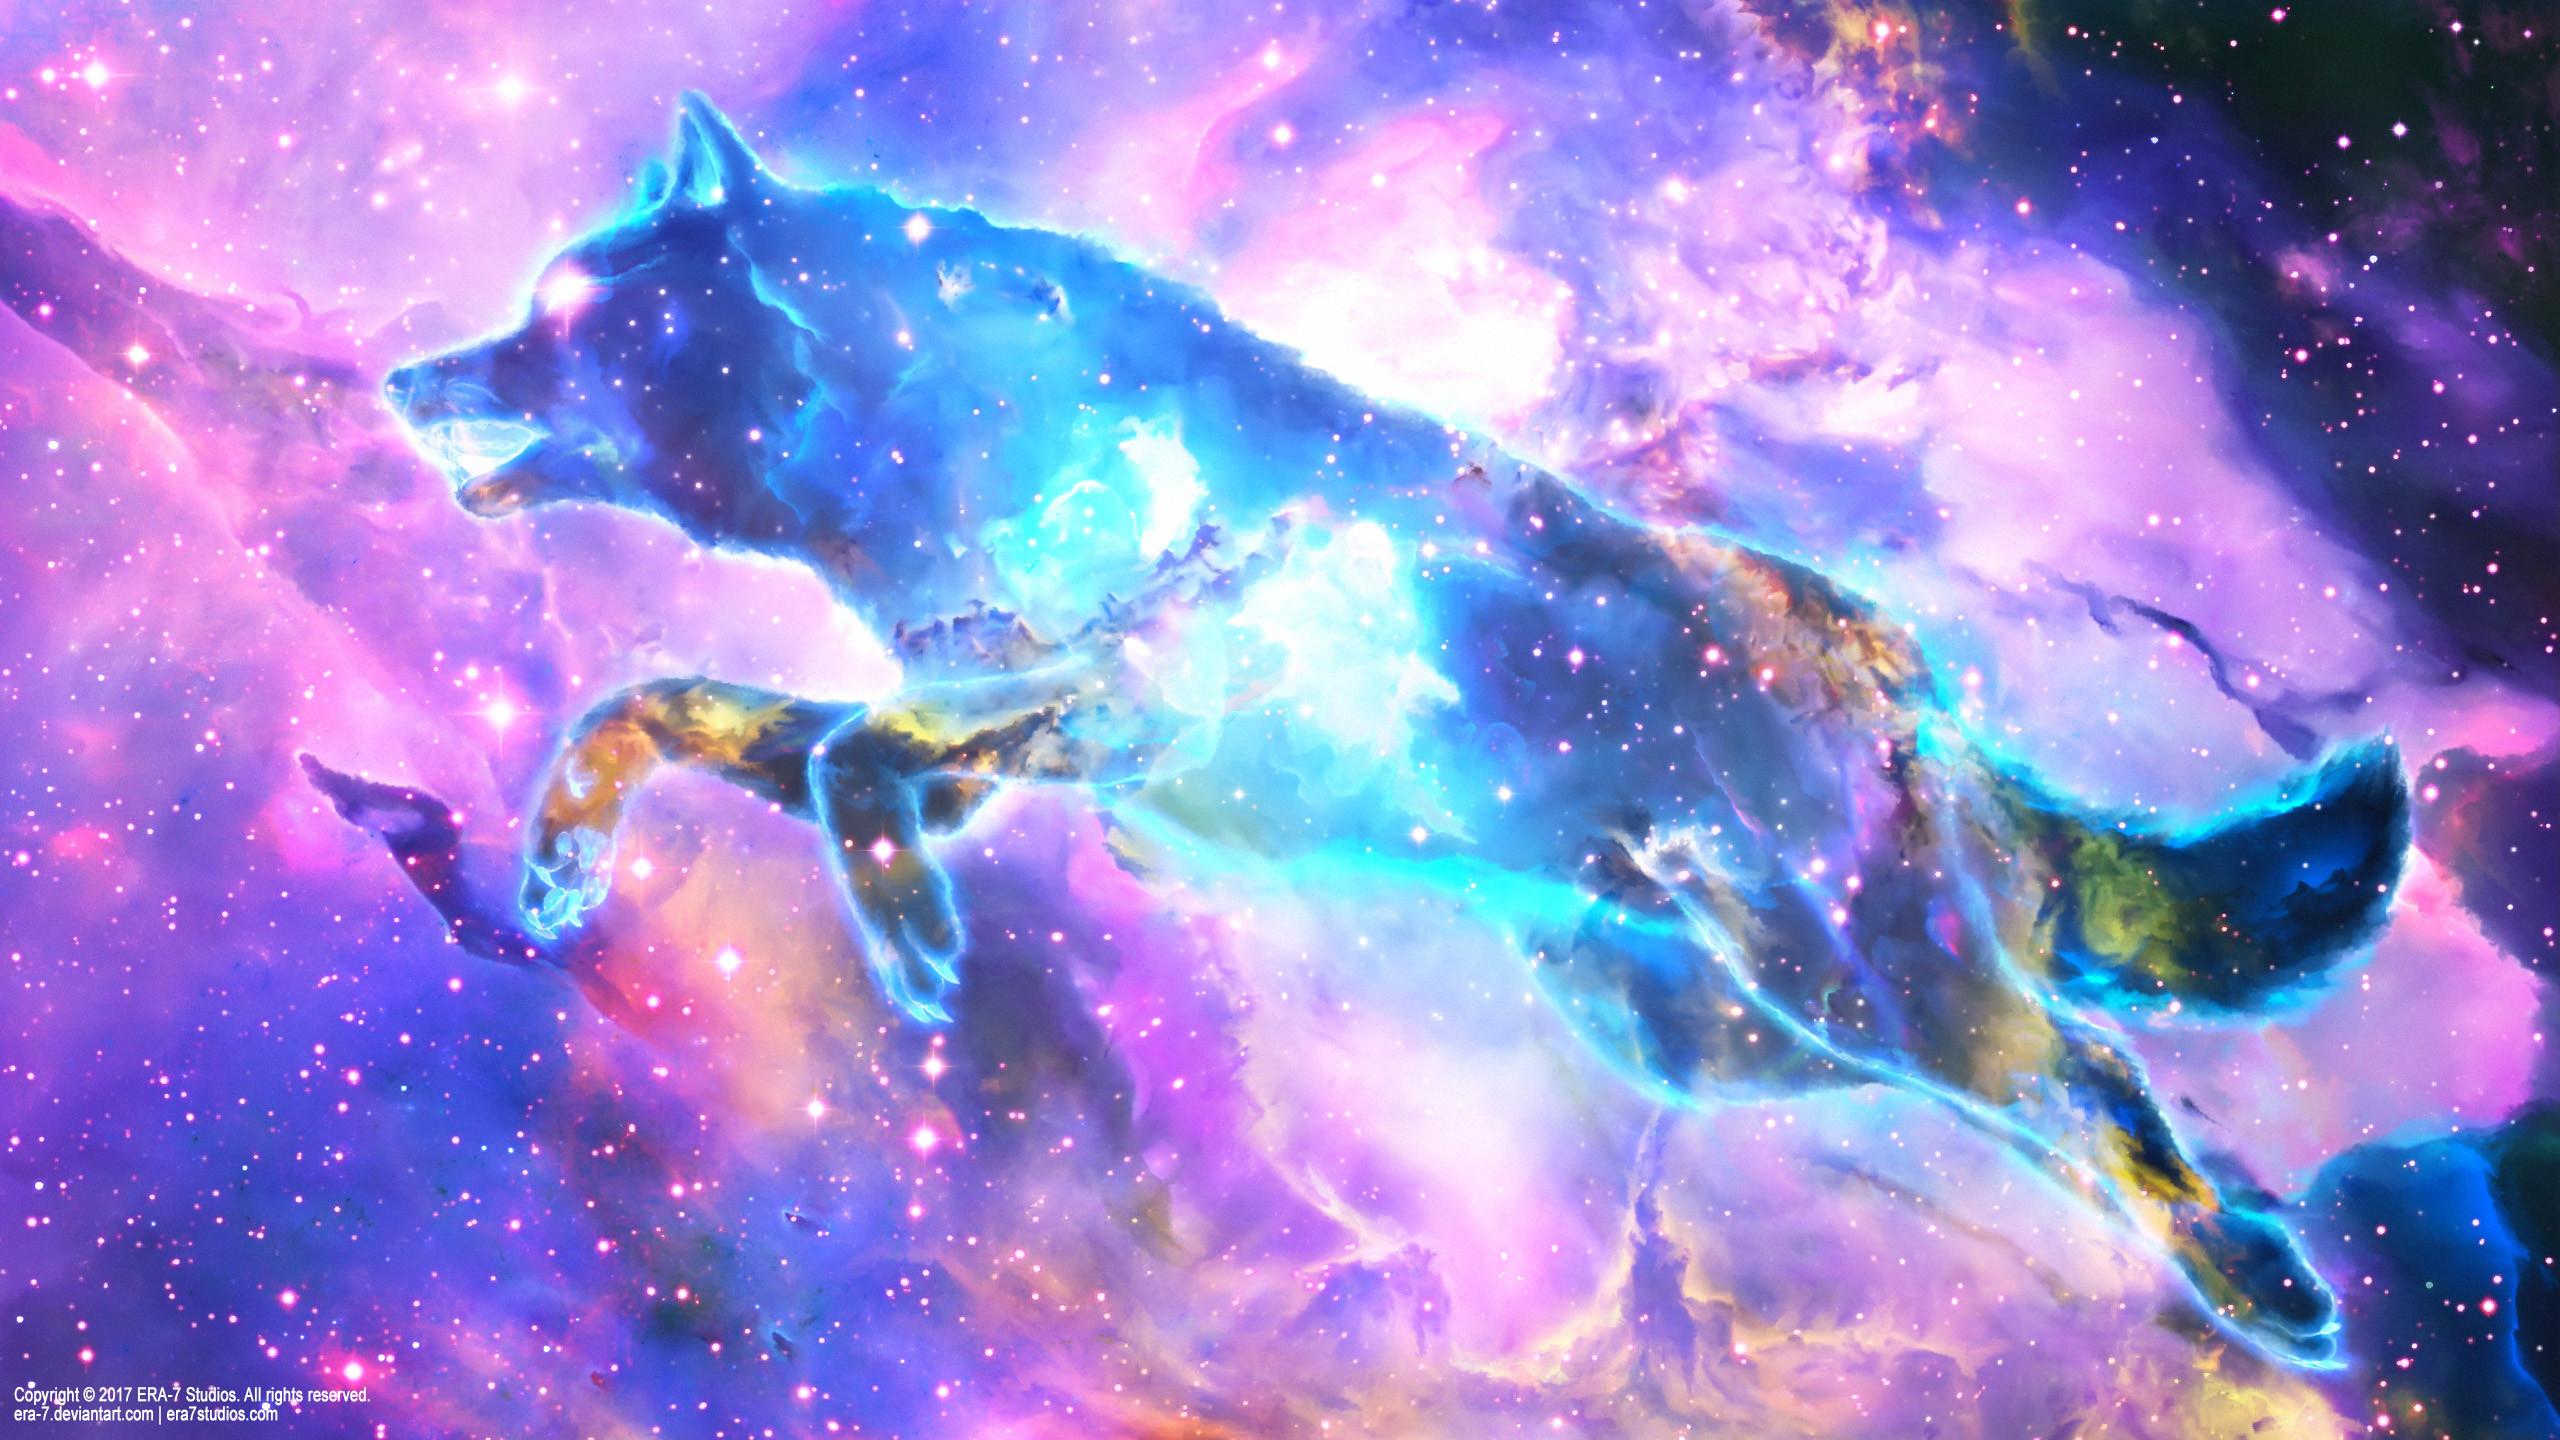 Galaxy Wolf Wallpaper (69+ images)